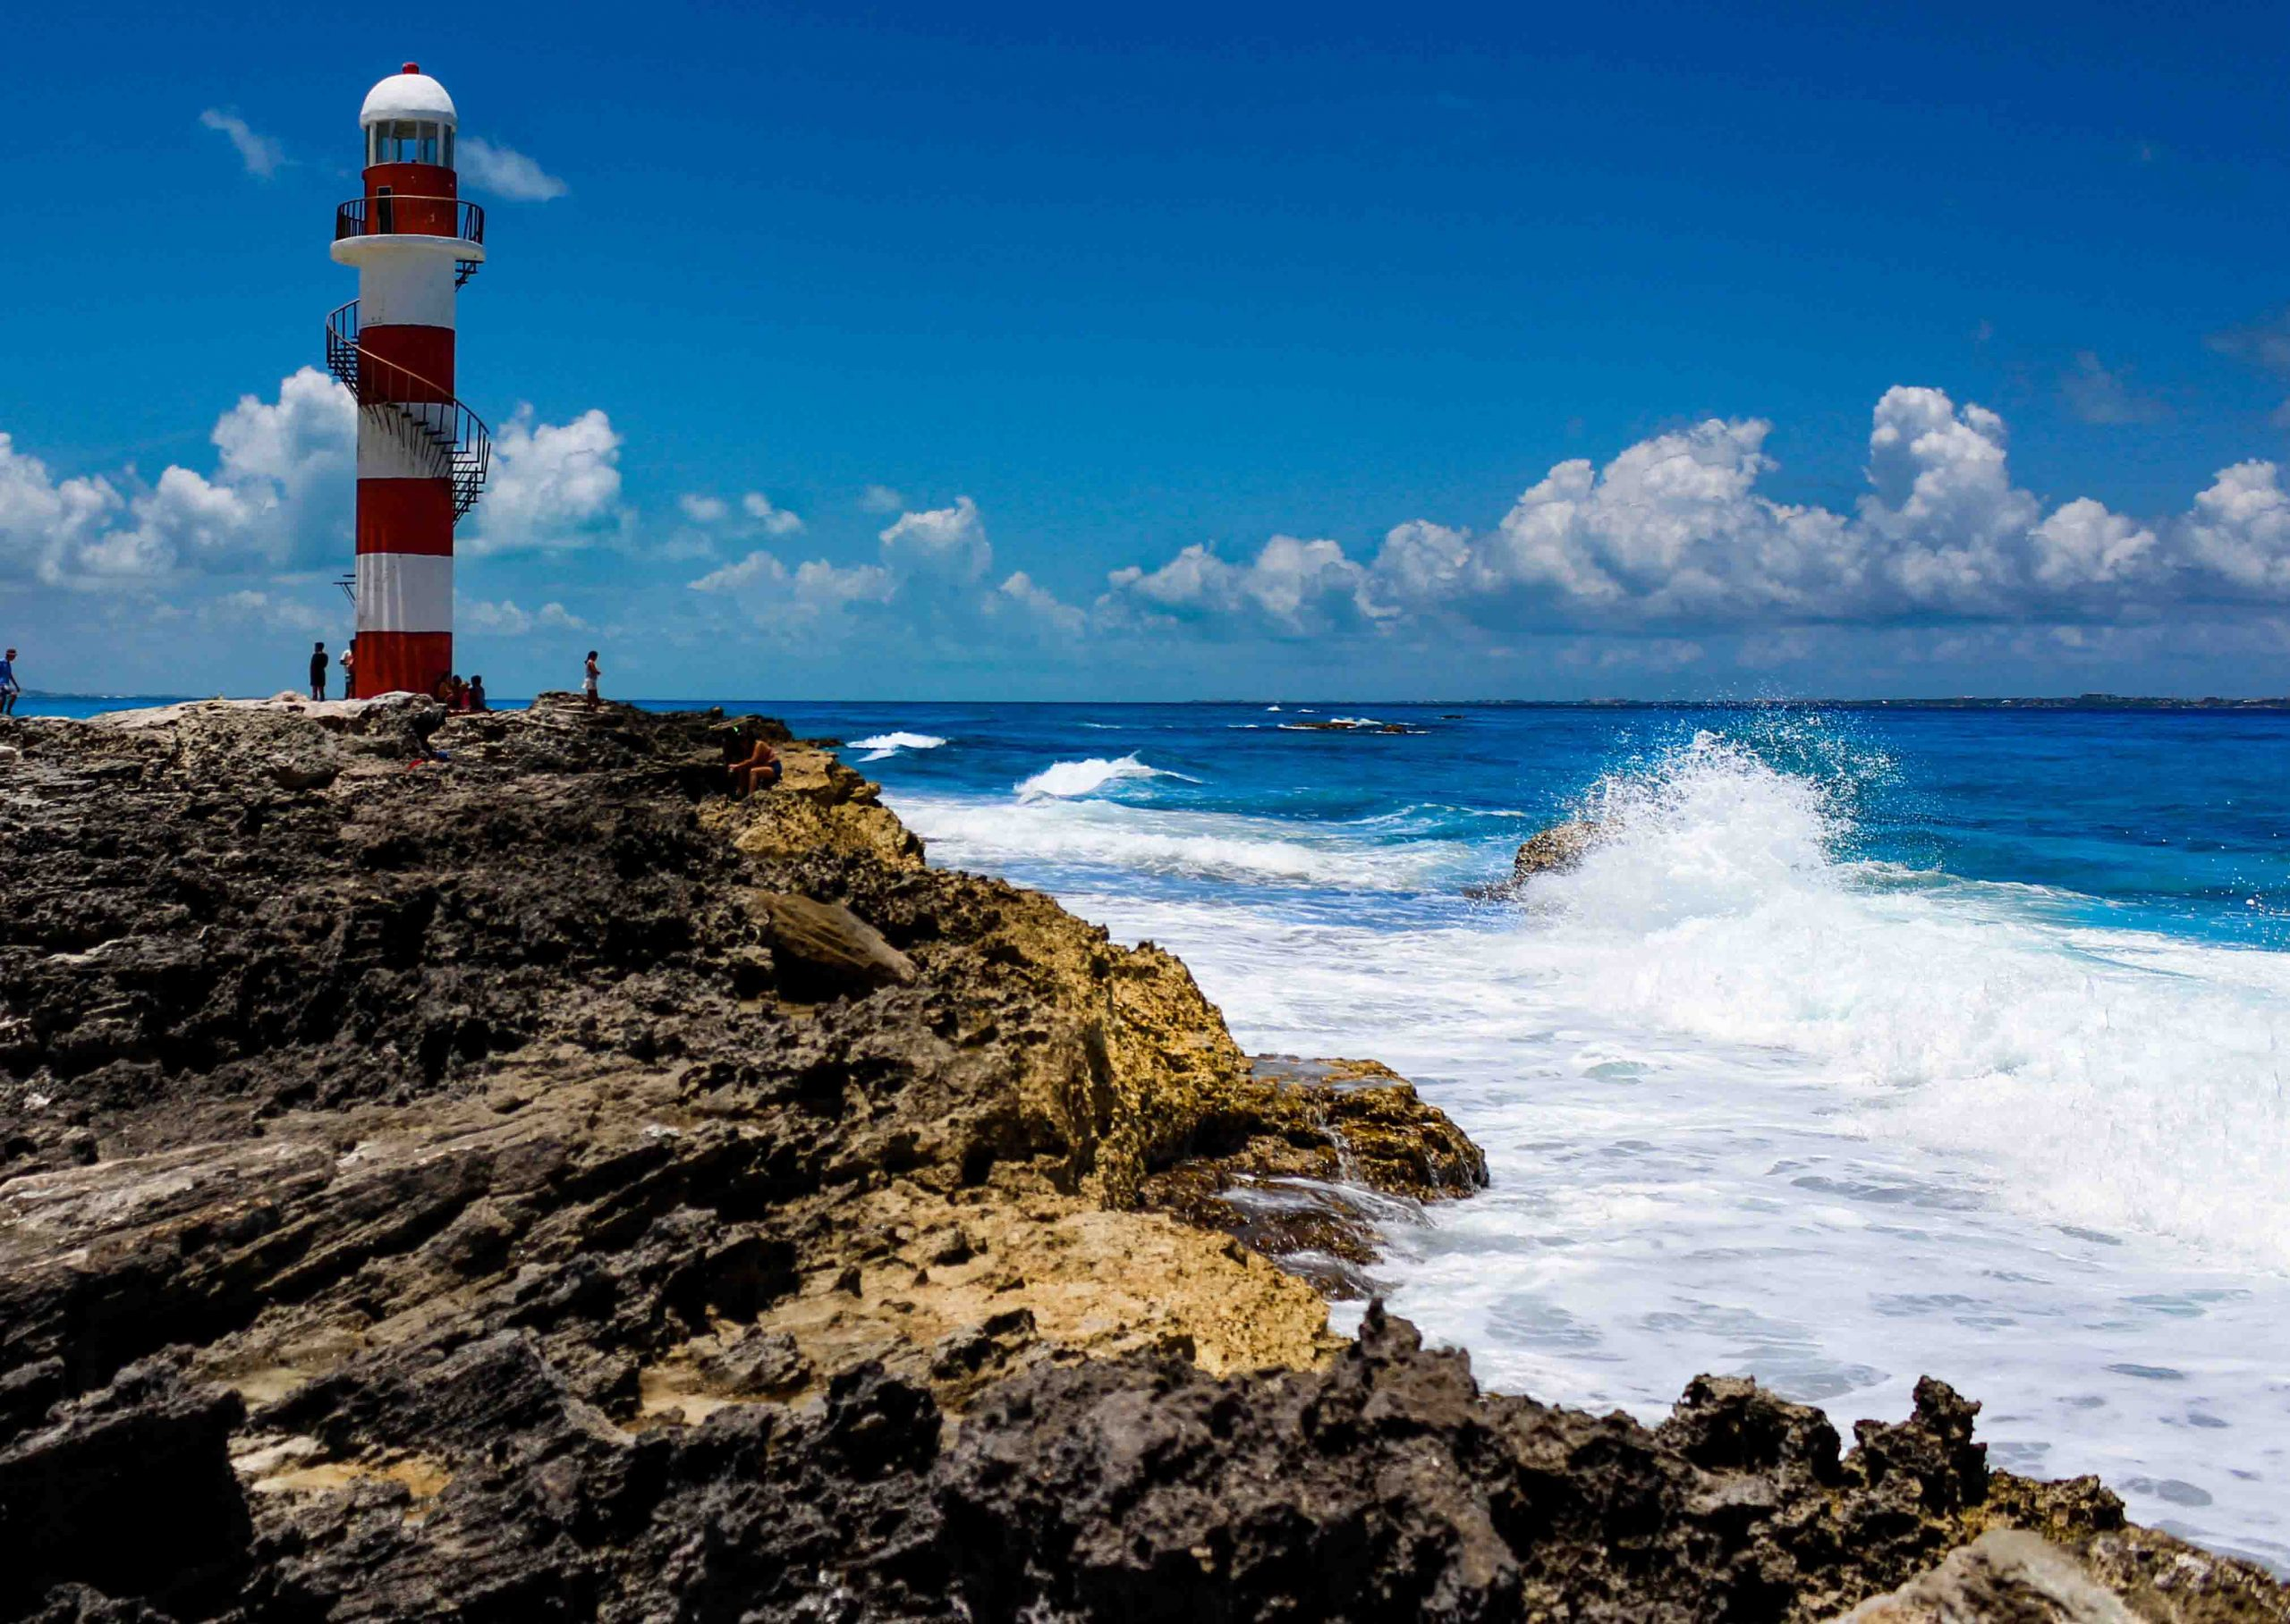 See the sunrise in the Punta Cancun's lighthouse